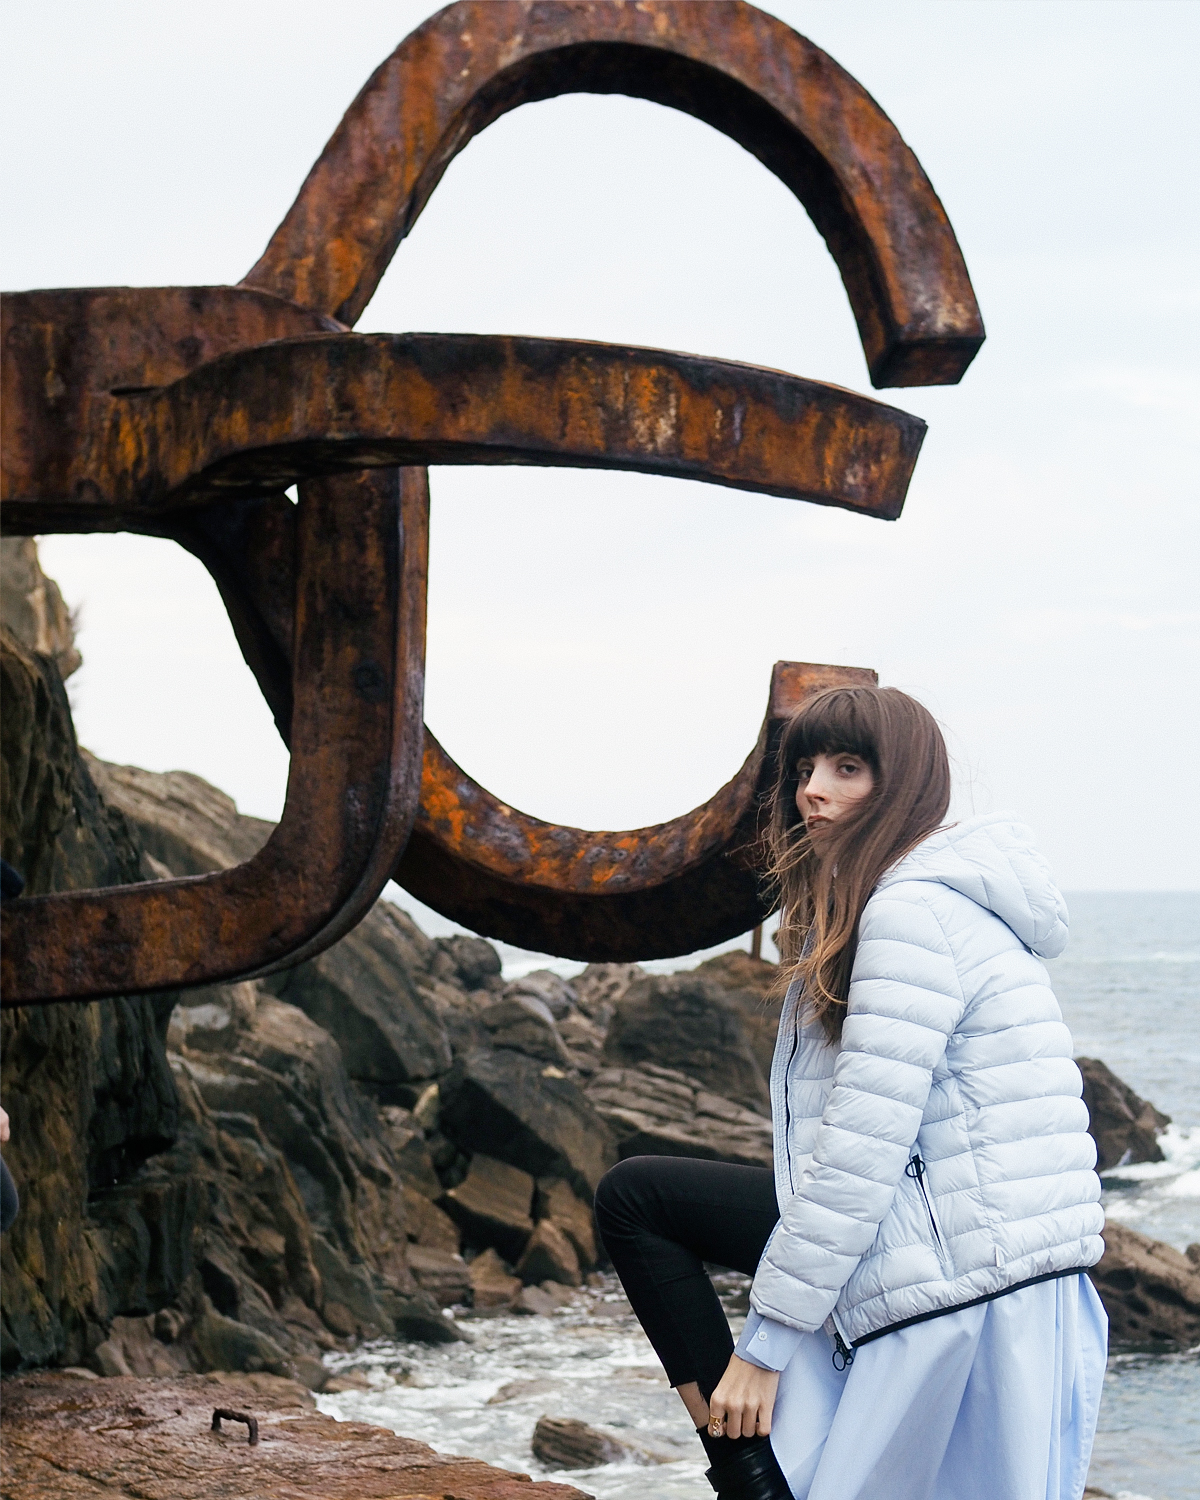 CHILLIDA-PEINE-DONOSTI-NORTH-SAILS-ANNA-PONSA-23